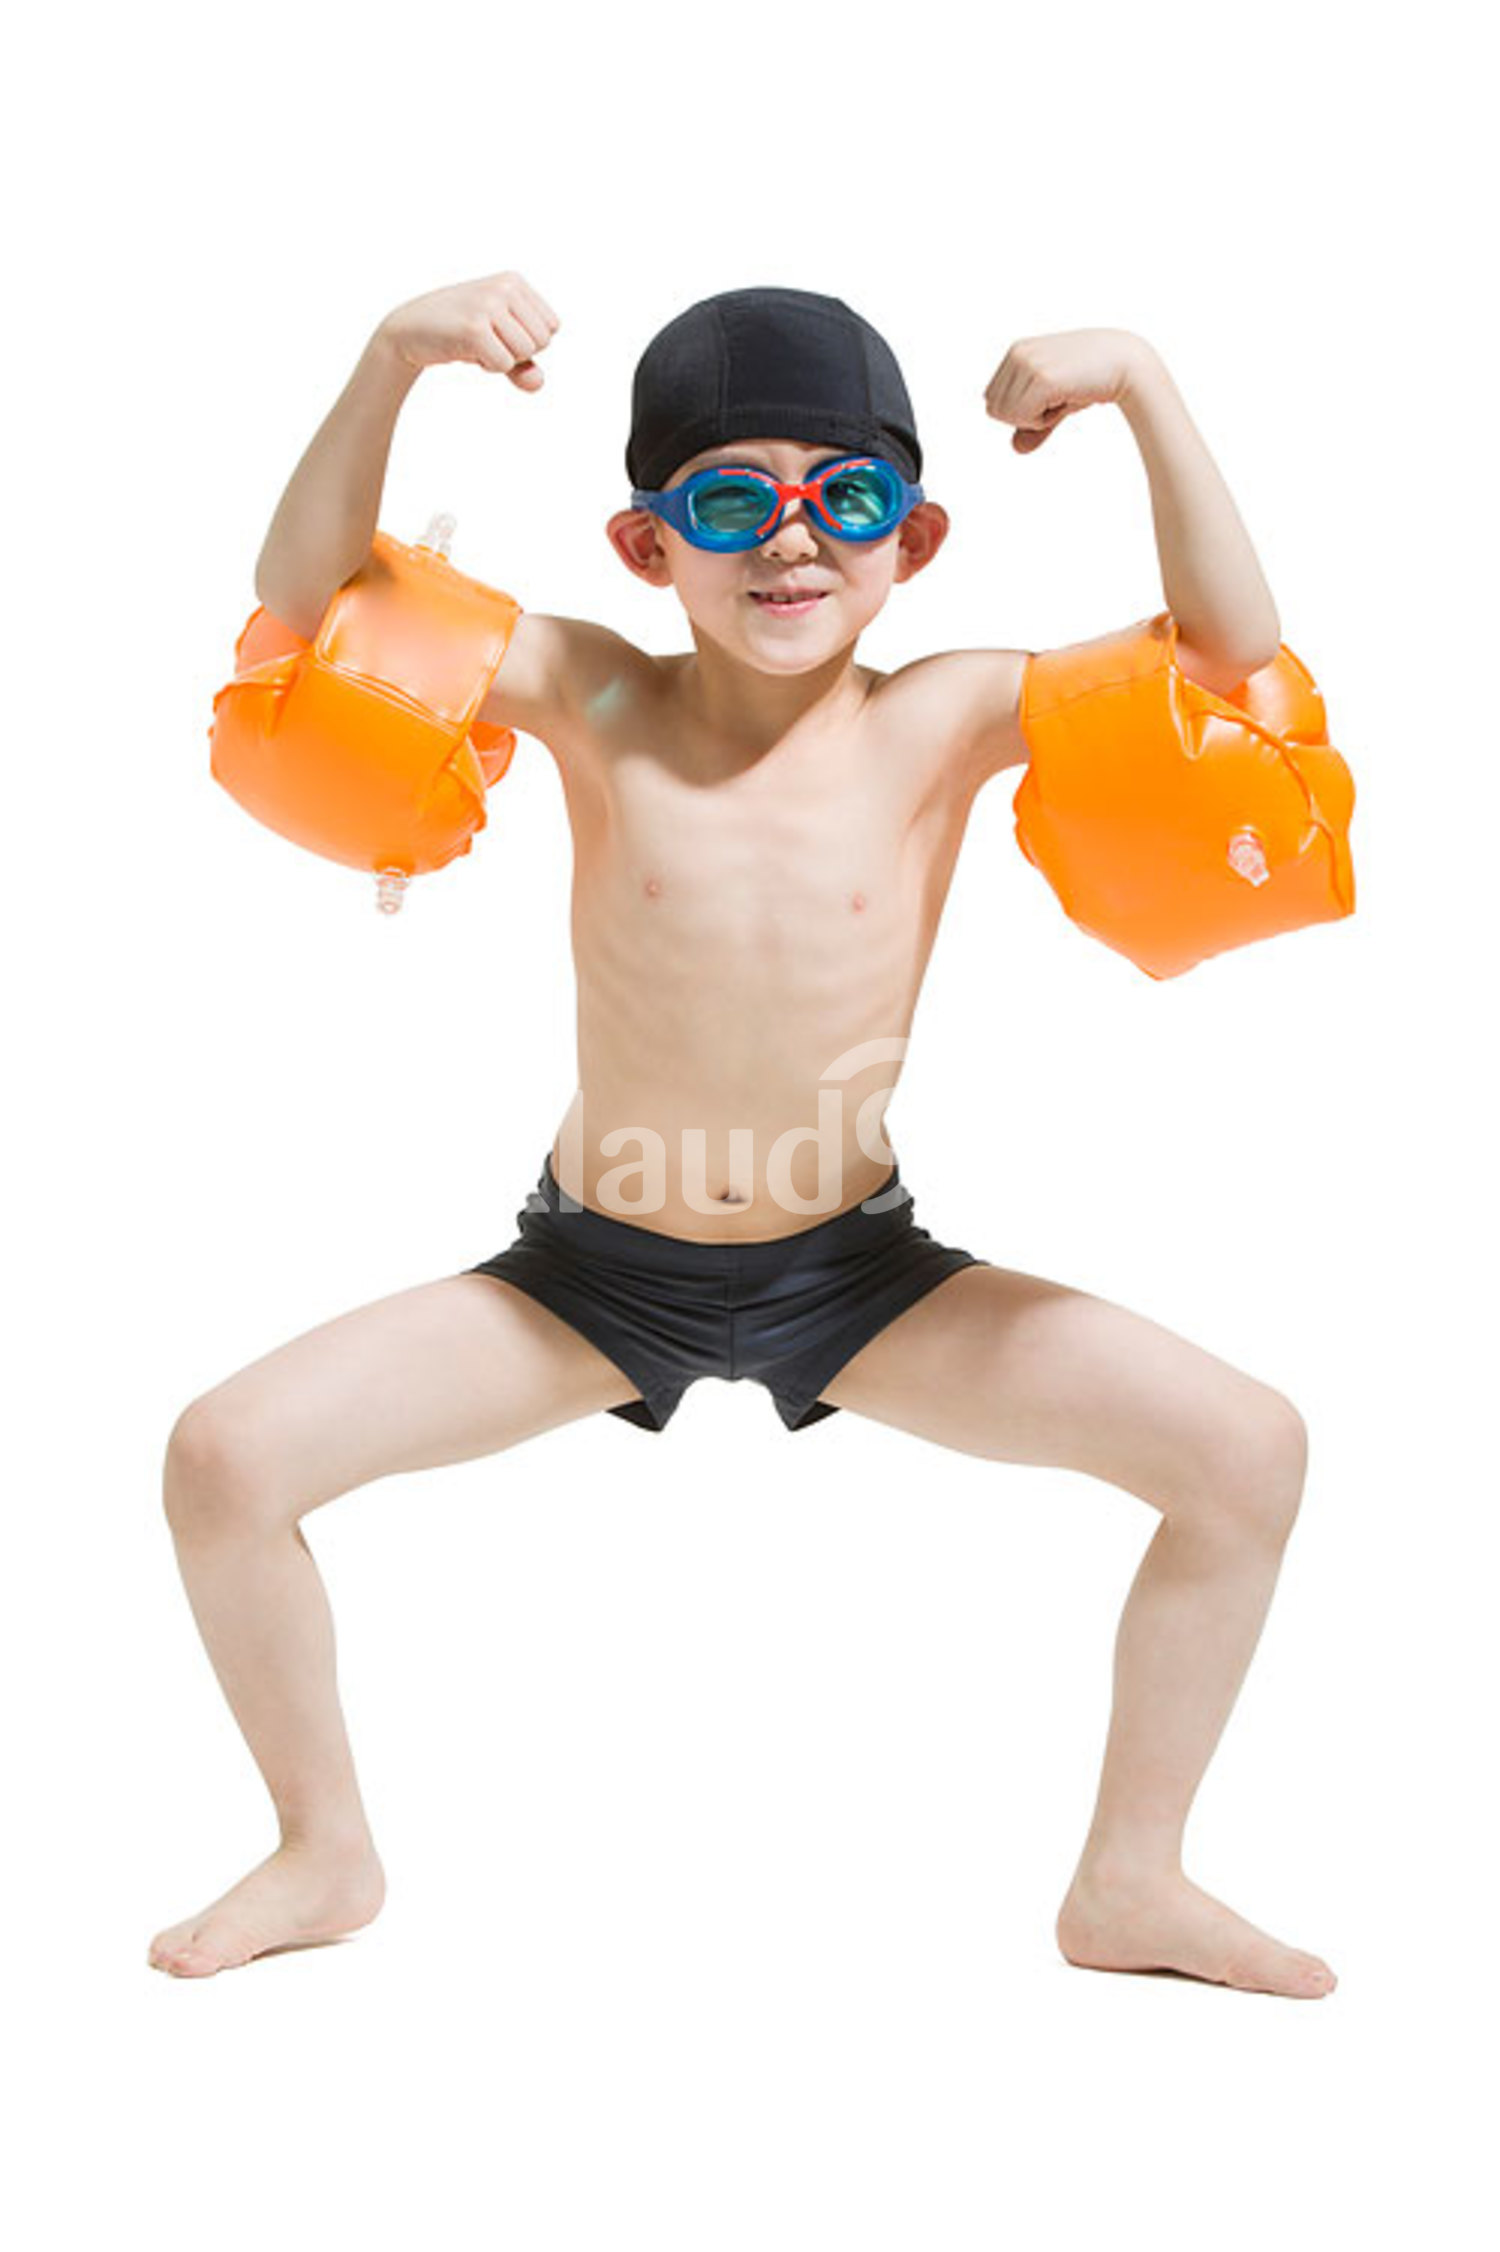 Cute Chinese boy in swimsuit with water wings